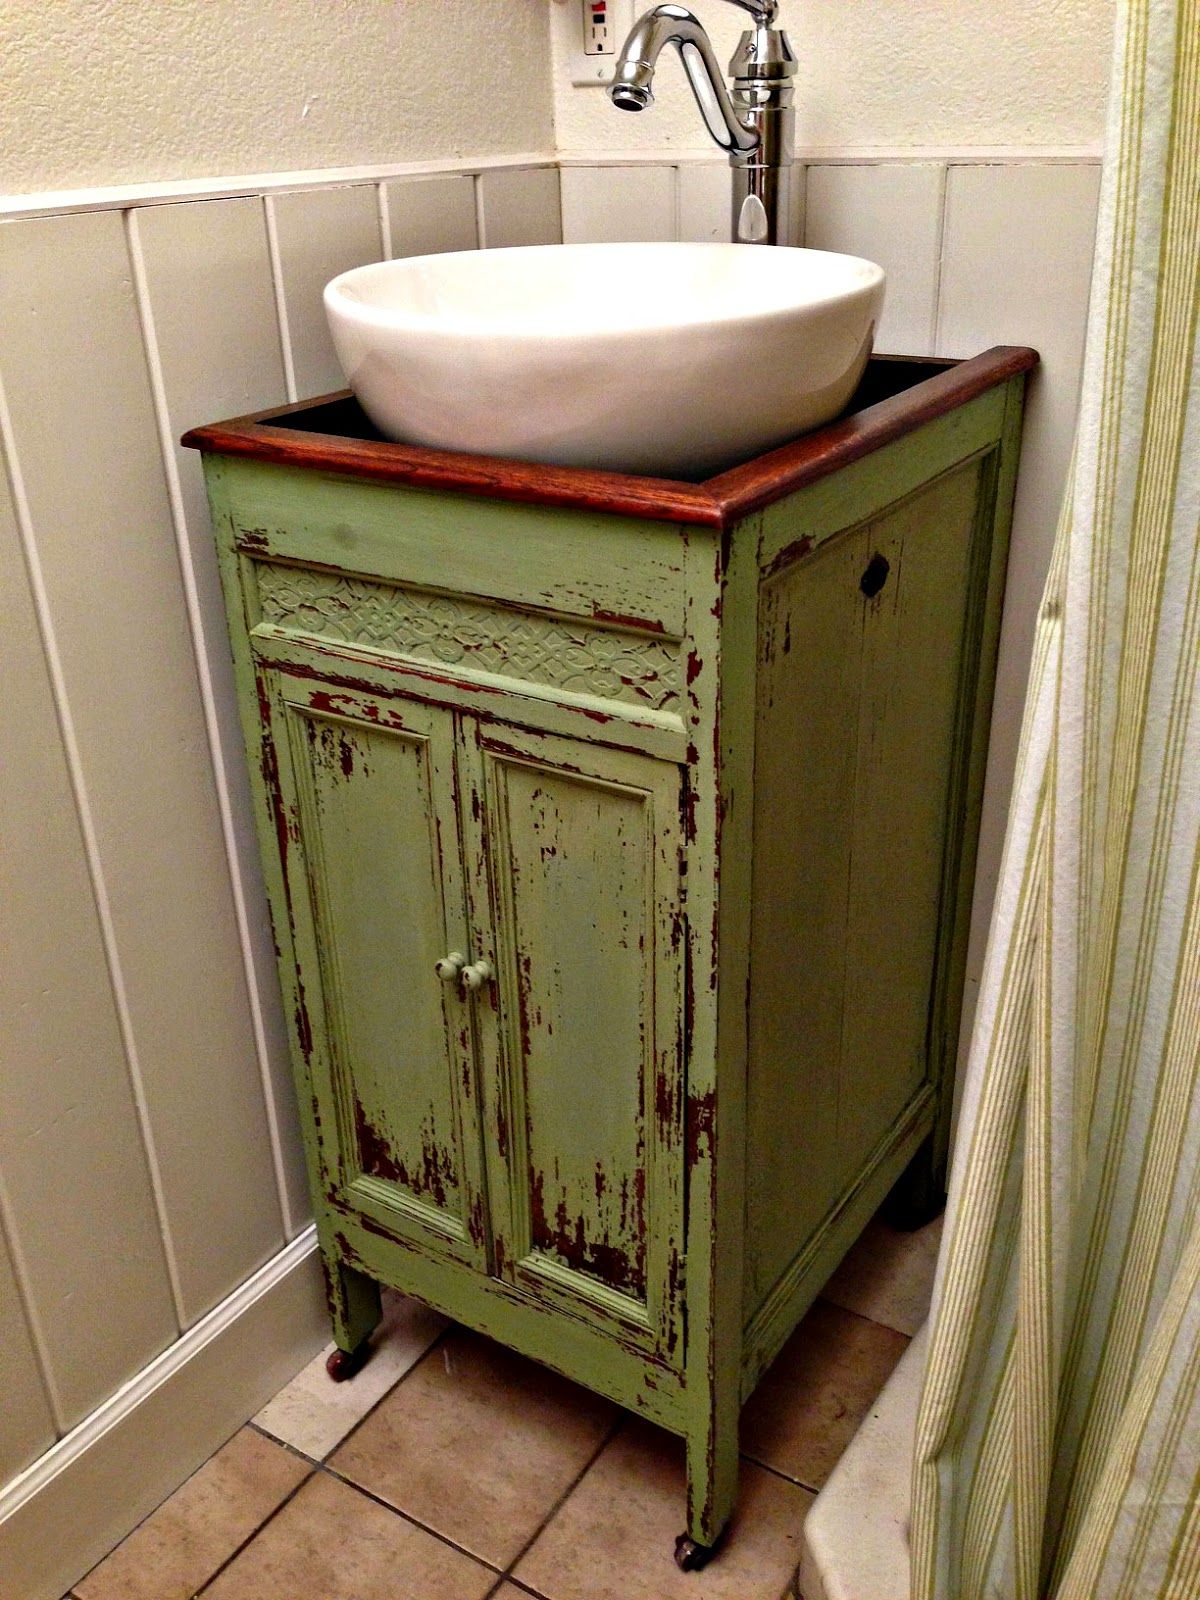 Bon 10 Creative And Repurposed Ideas For Alternative Bathroom Vanities